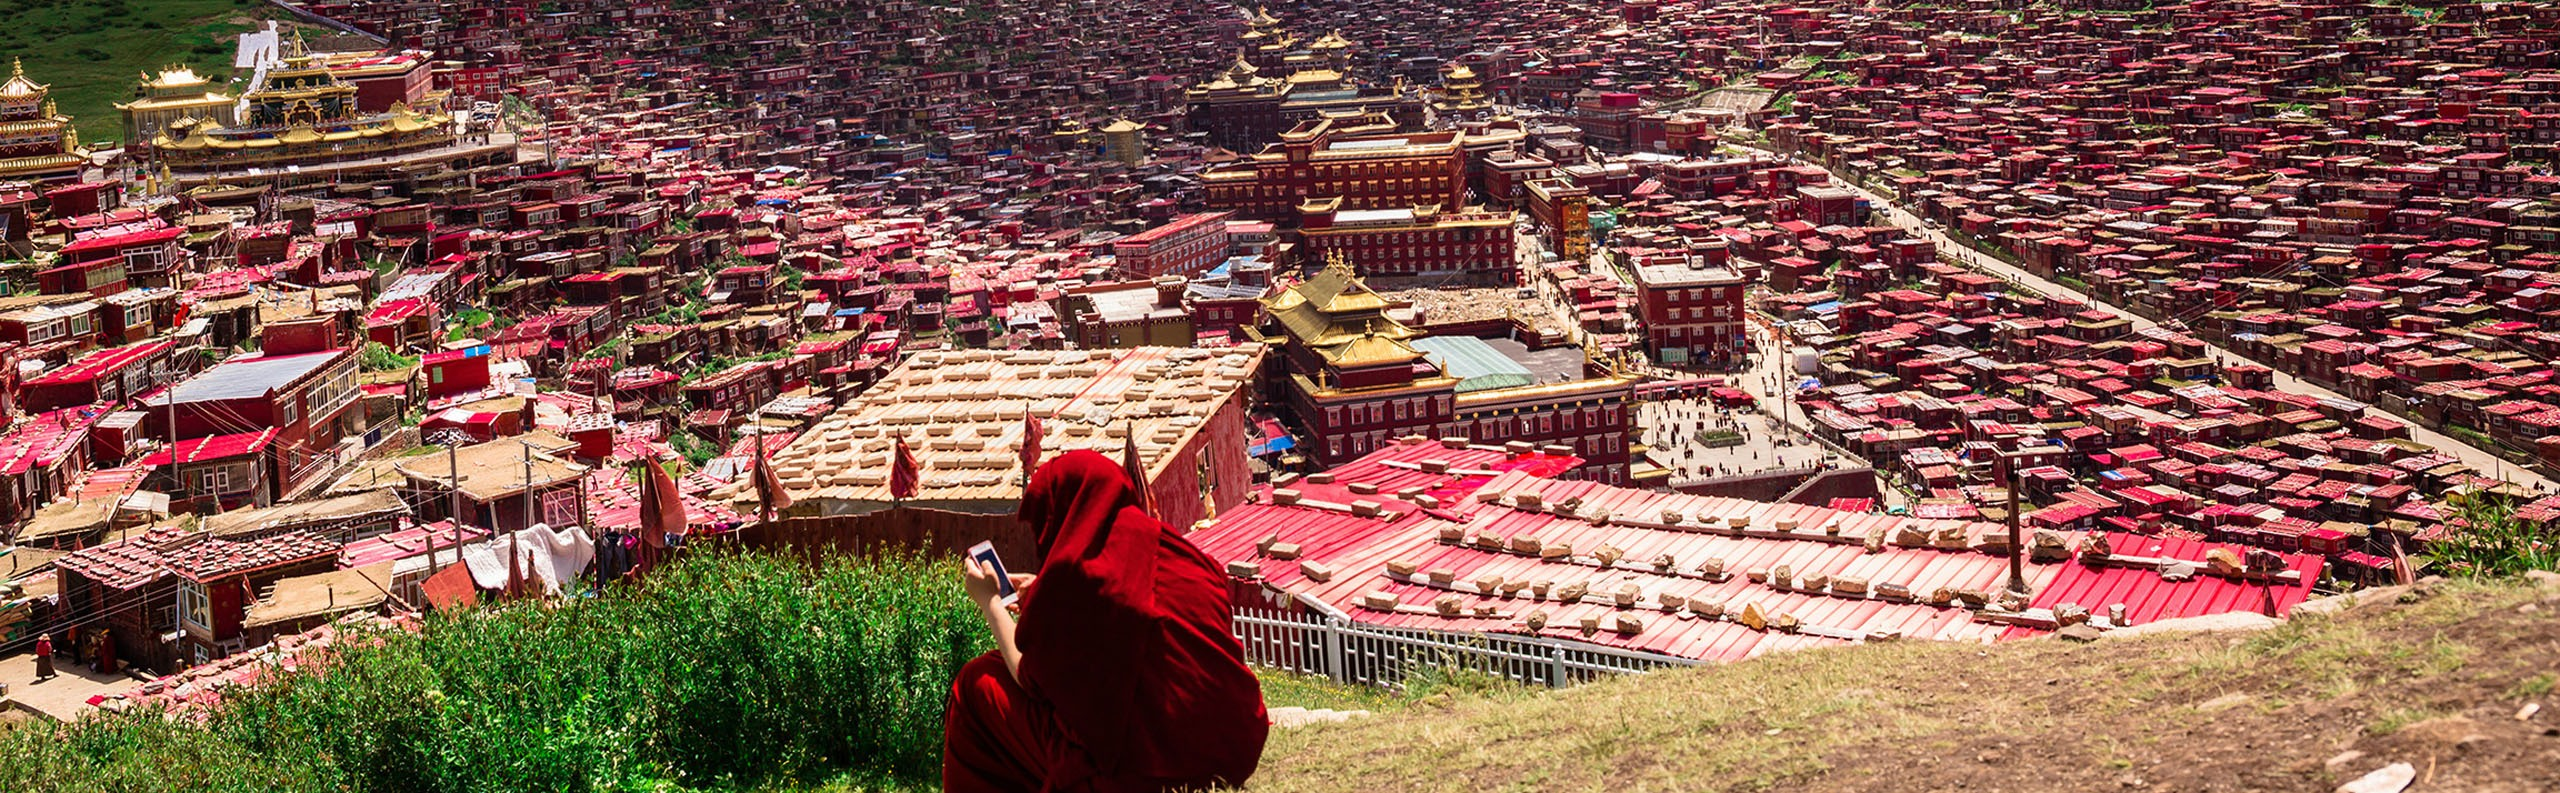 9 Days Photo Tour of Hidden Gems of Tibetan Culture